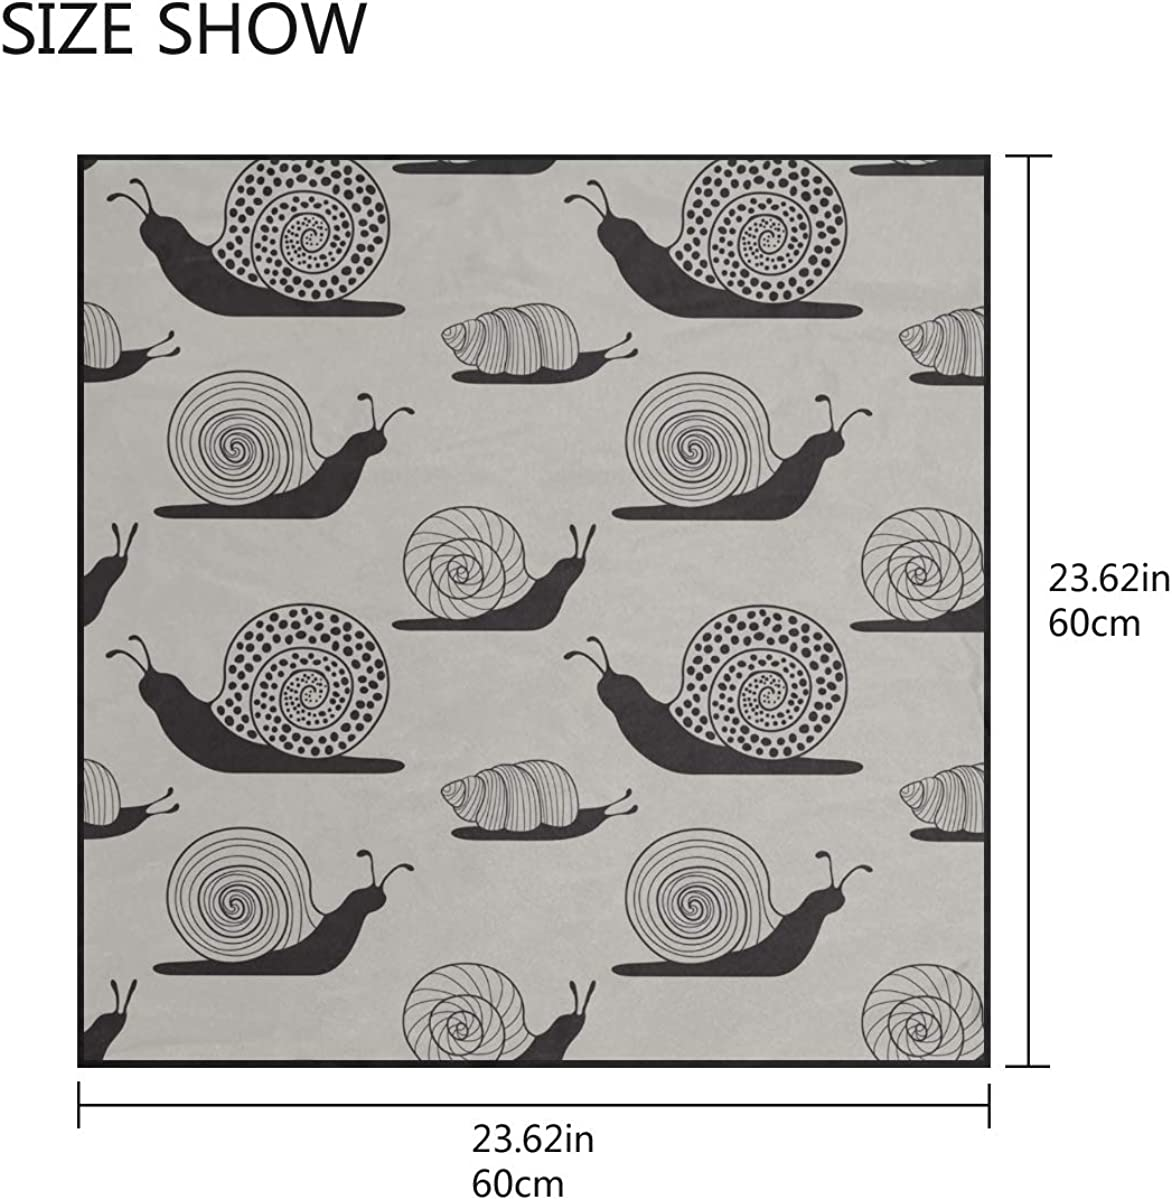 Soft Polyester Silk Womens Head Scarfs Fashion Print Cute Snails And Shells Women Scarf Wall Scarves Hair Neck Scarf Multiple Ways Of Wearing Daily Decor